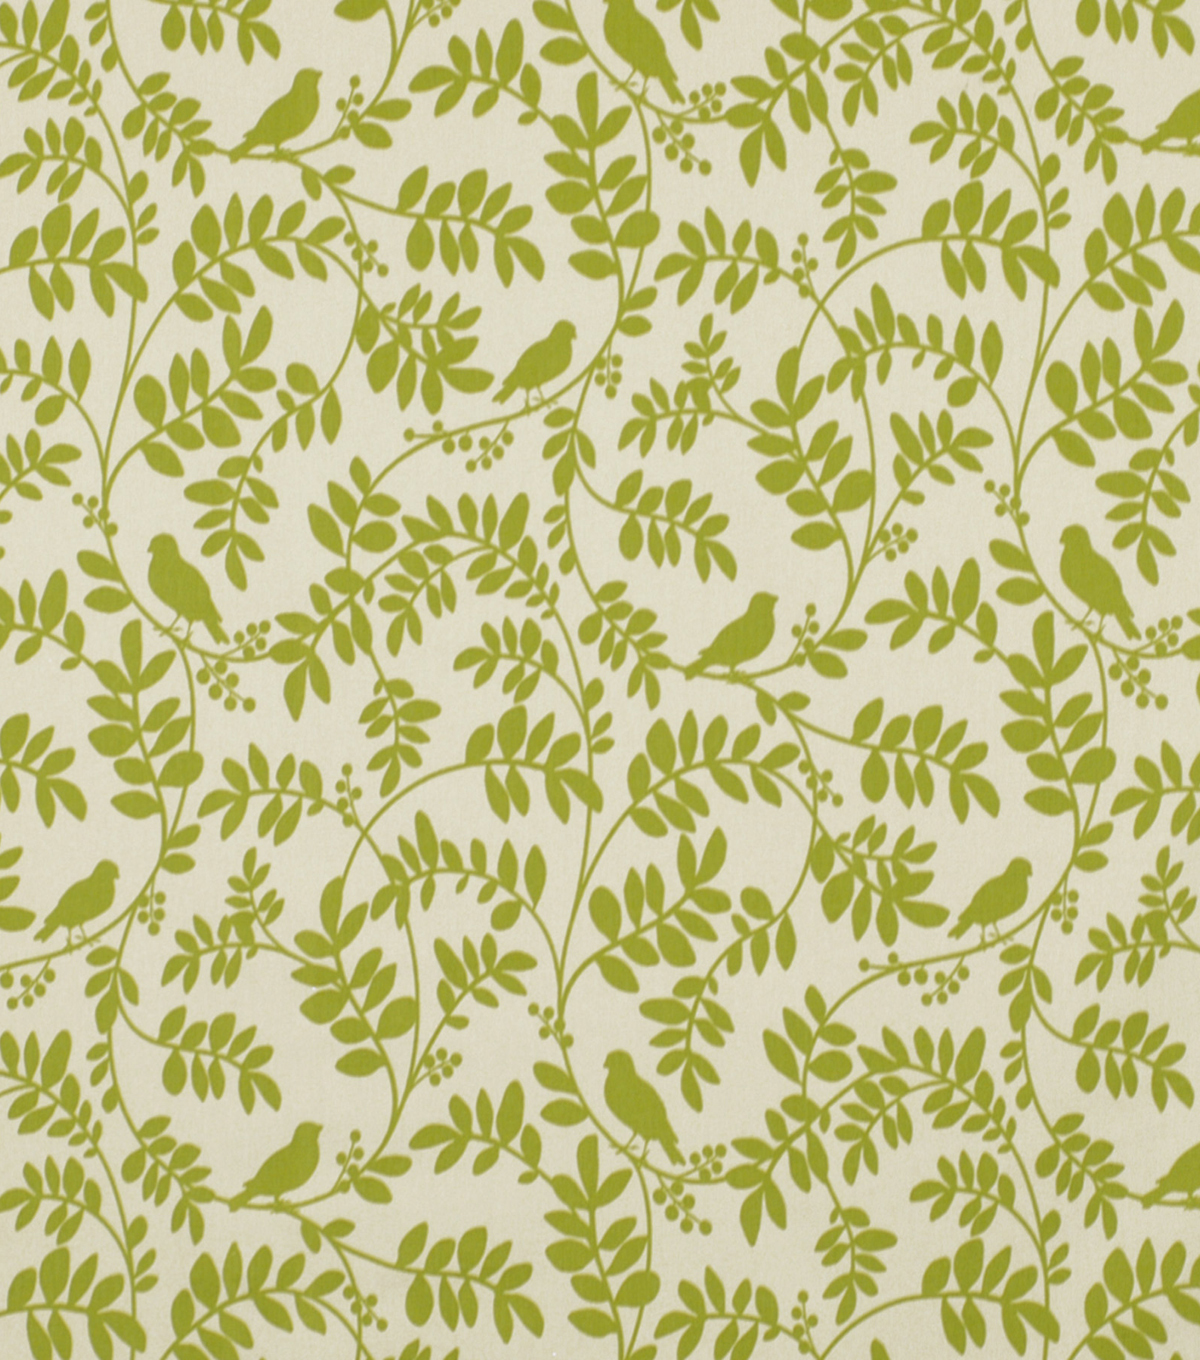 Home Decor 8\u0022x8\u0022 Fabric Swatch-Print Fabric Nautica Botany Flora Leaf